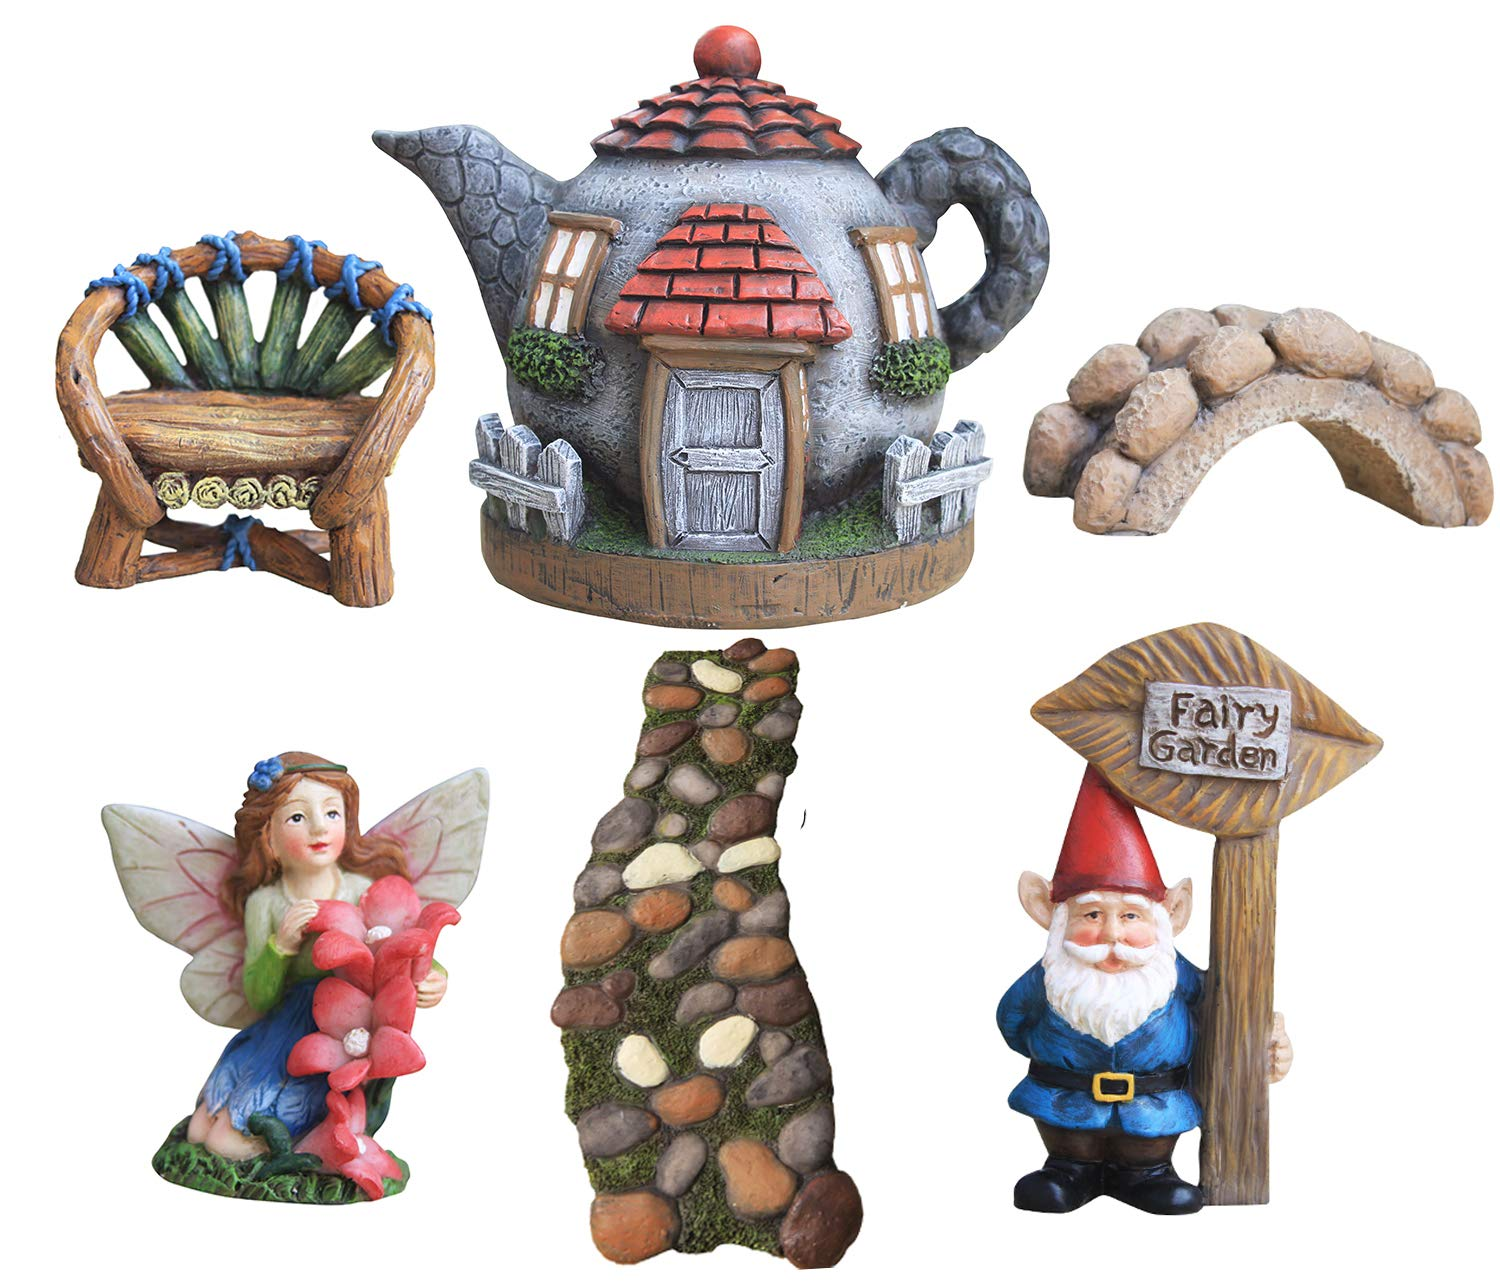 LA JOLIE MUSE Fairy Garden Accessories Kit 6pcs, Gnome&Fairies Statues, Hand Painted Miniature Figurines House Set